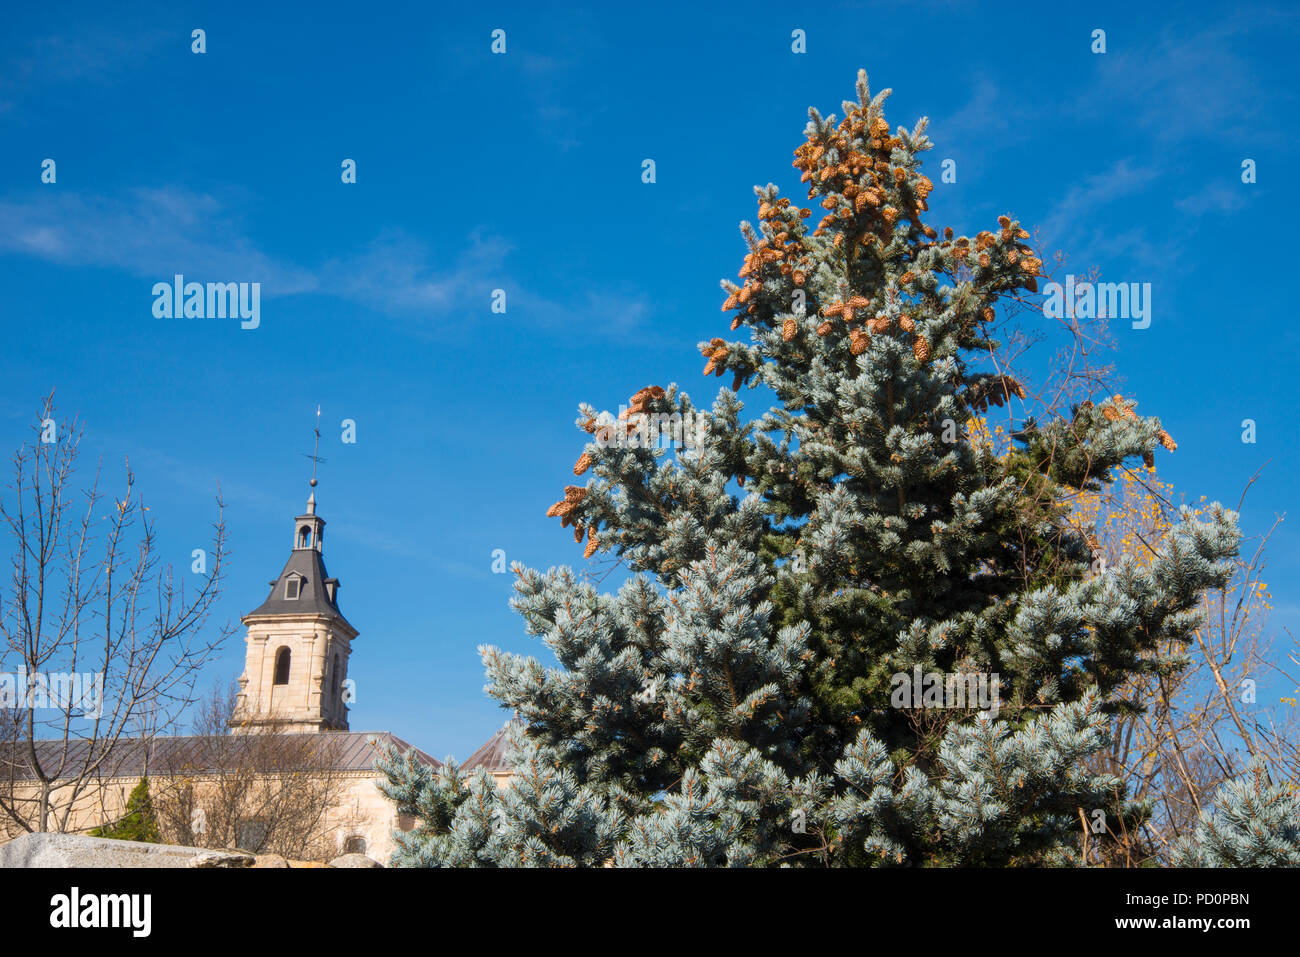 El Paular monastery and blue spruce. Rascafria, Madrid province, Spain. - Stock Image